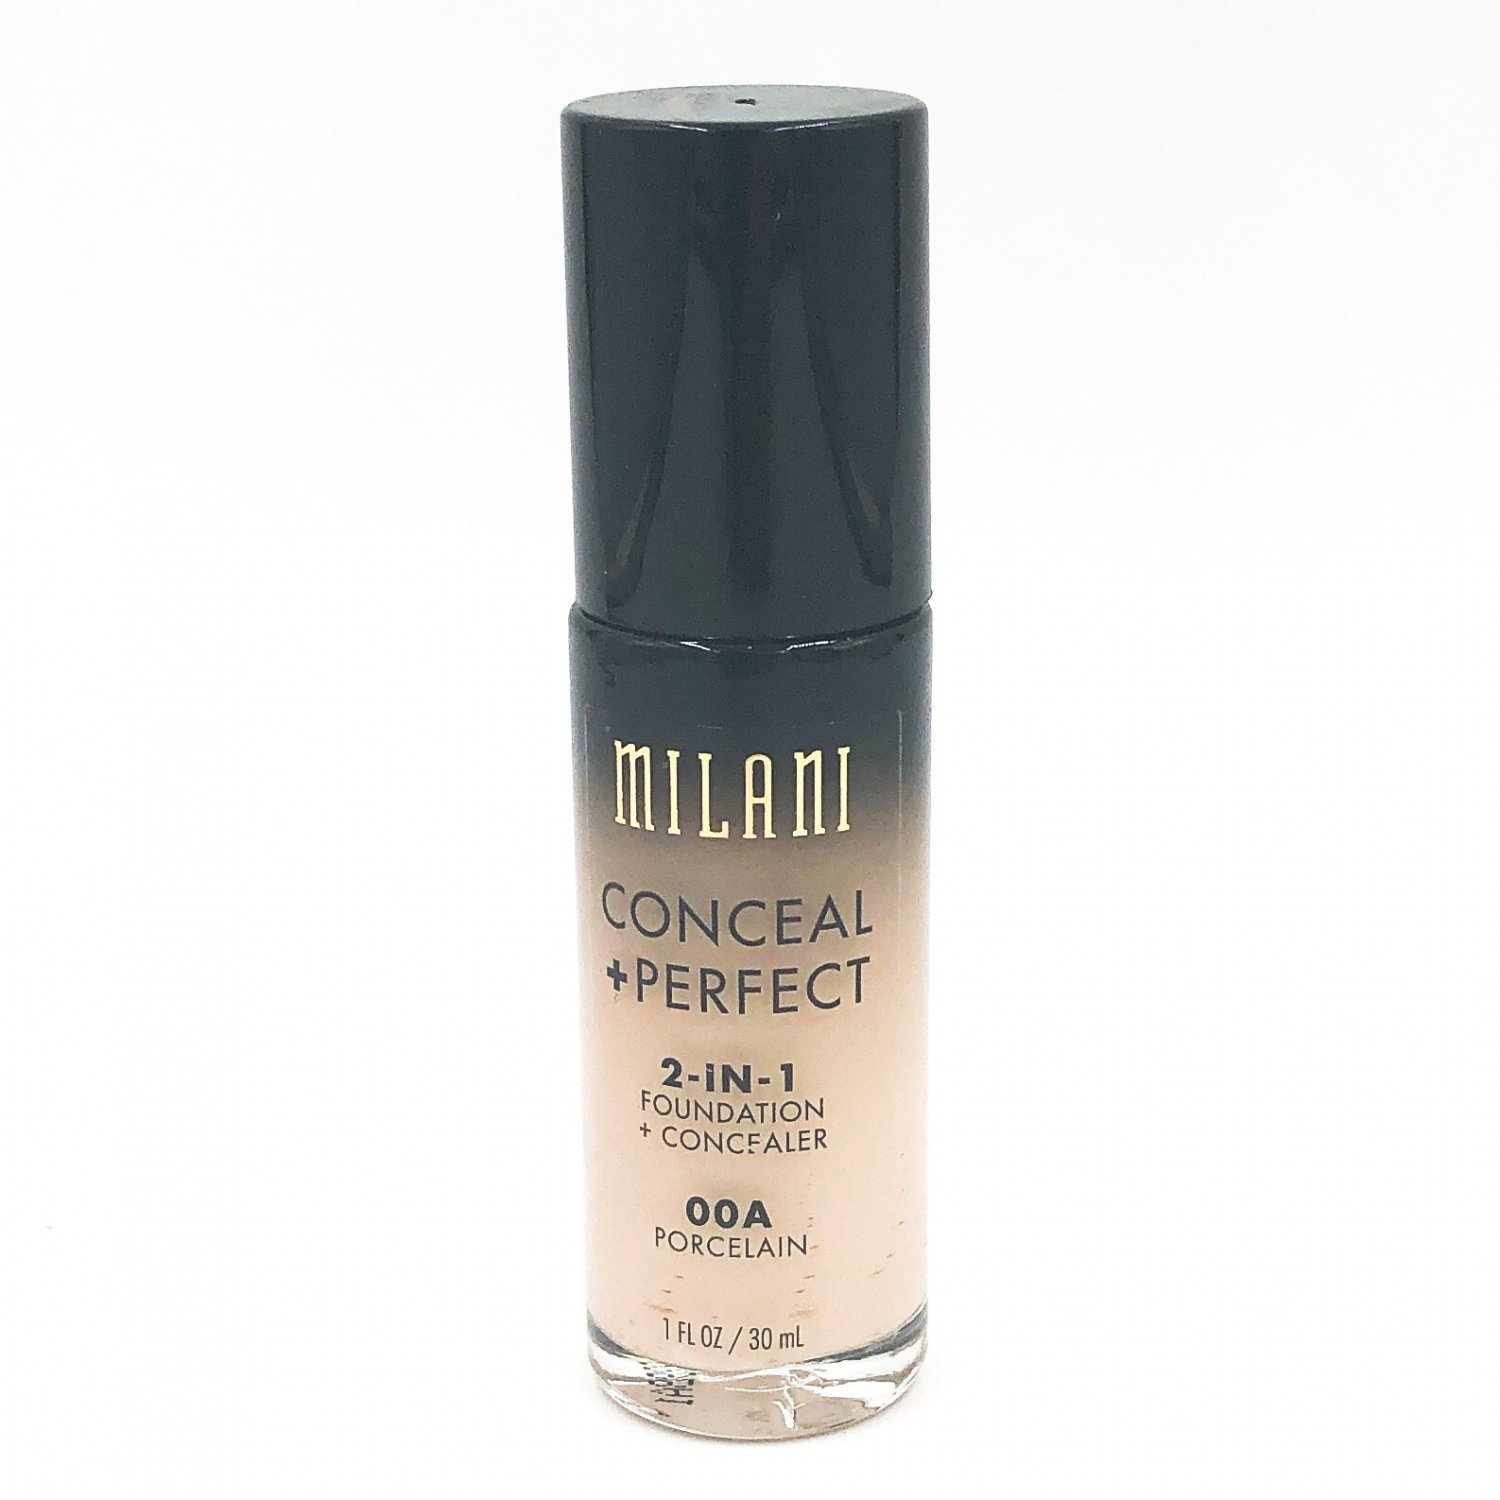 Milani Conceal + Perfect 2-in-1 Foundation + Concealer 00A Porcelain